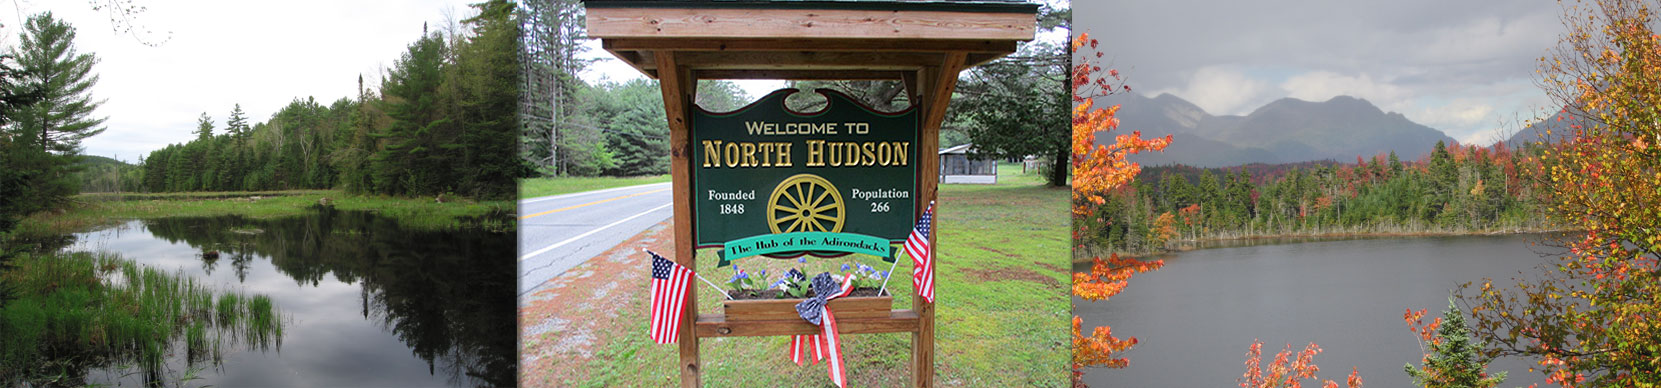 Welcome to North Hudson NY sign - Boreas Pond - East Mill Flow, Round, Trout